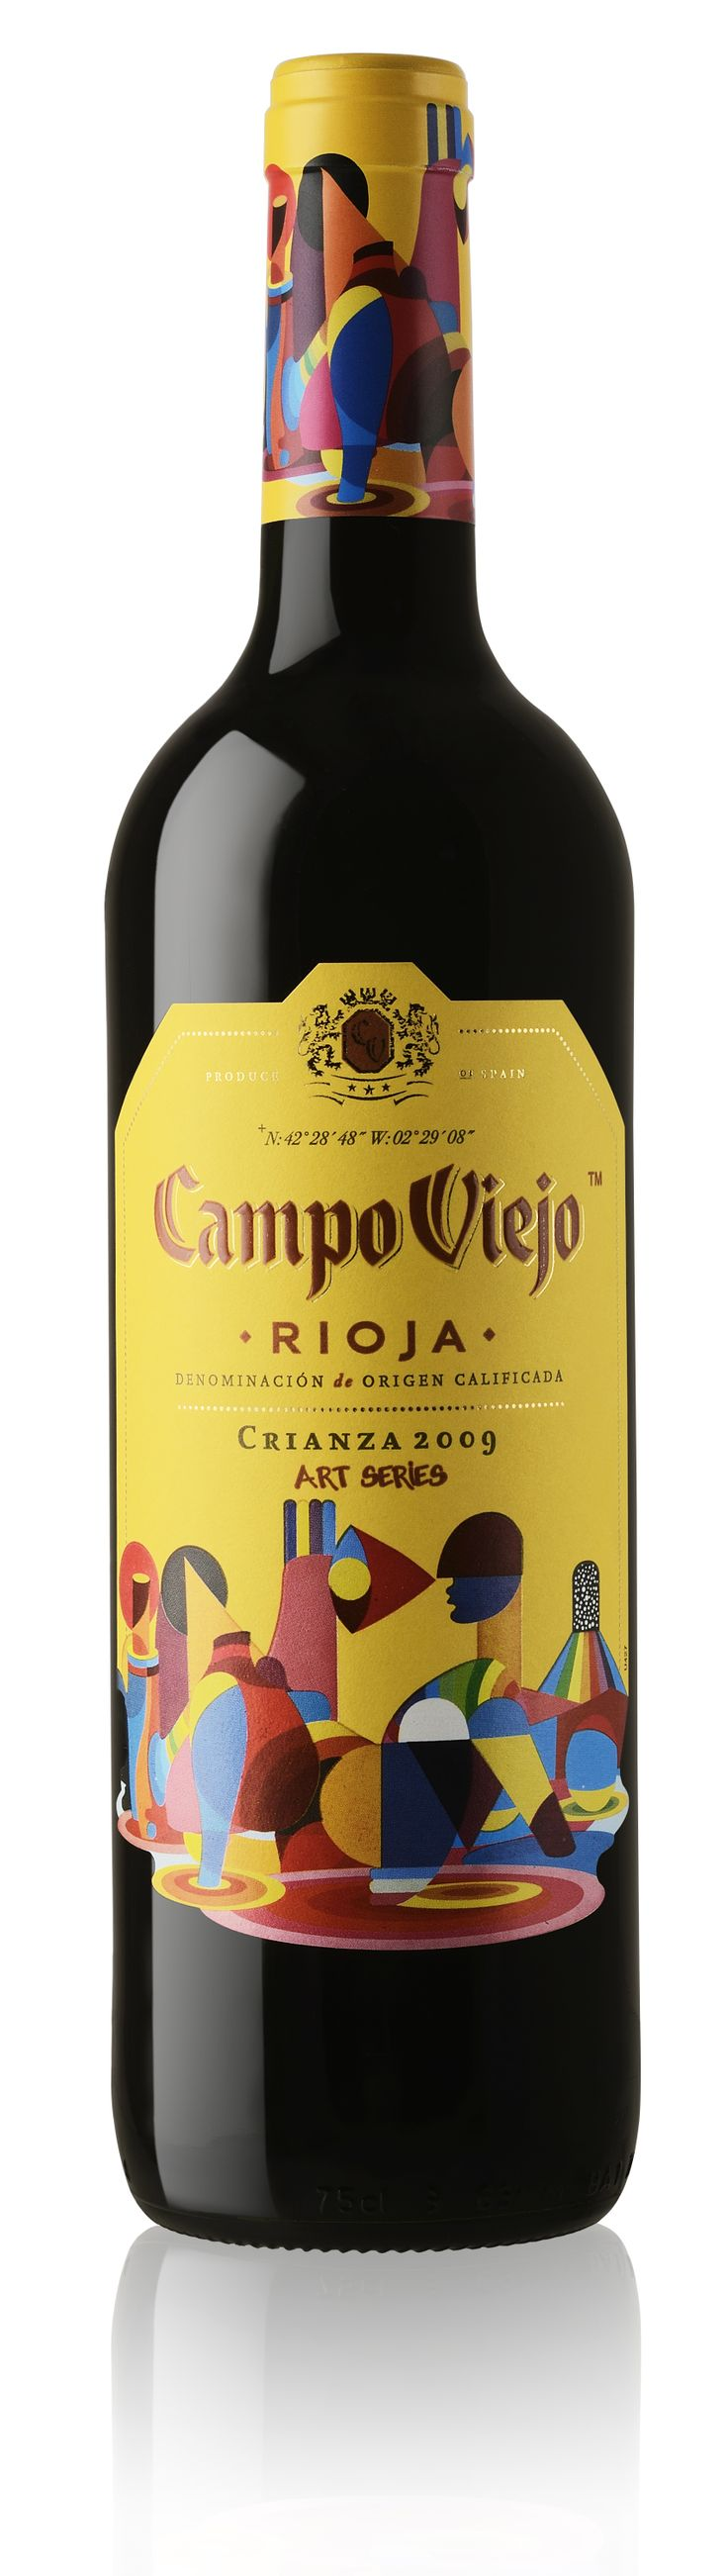 Campo Viejo Crianza 2009 Art Series. PD